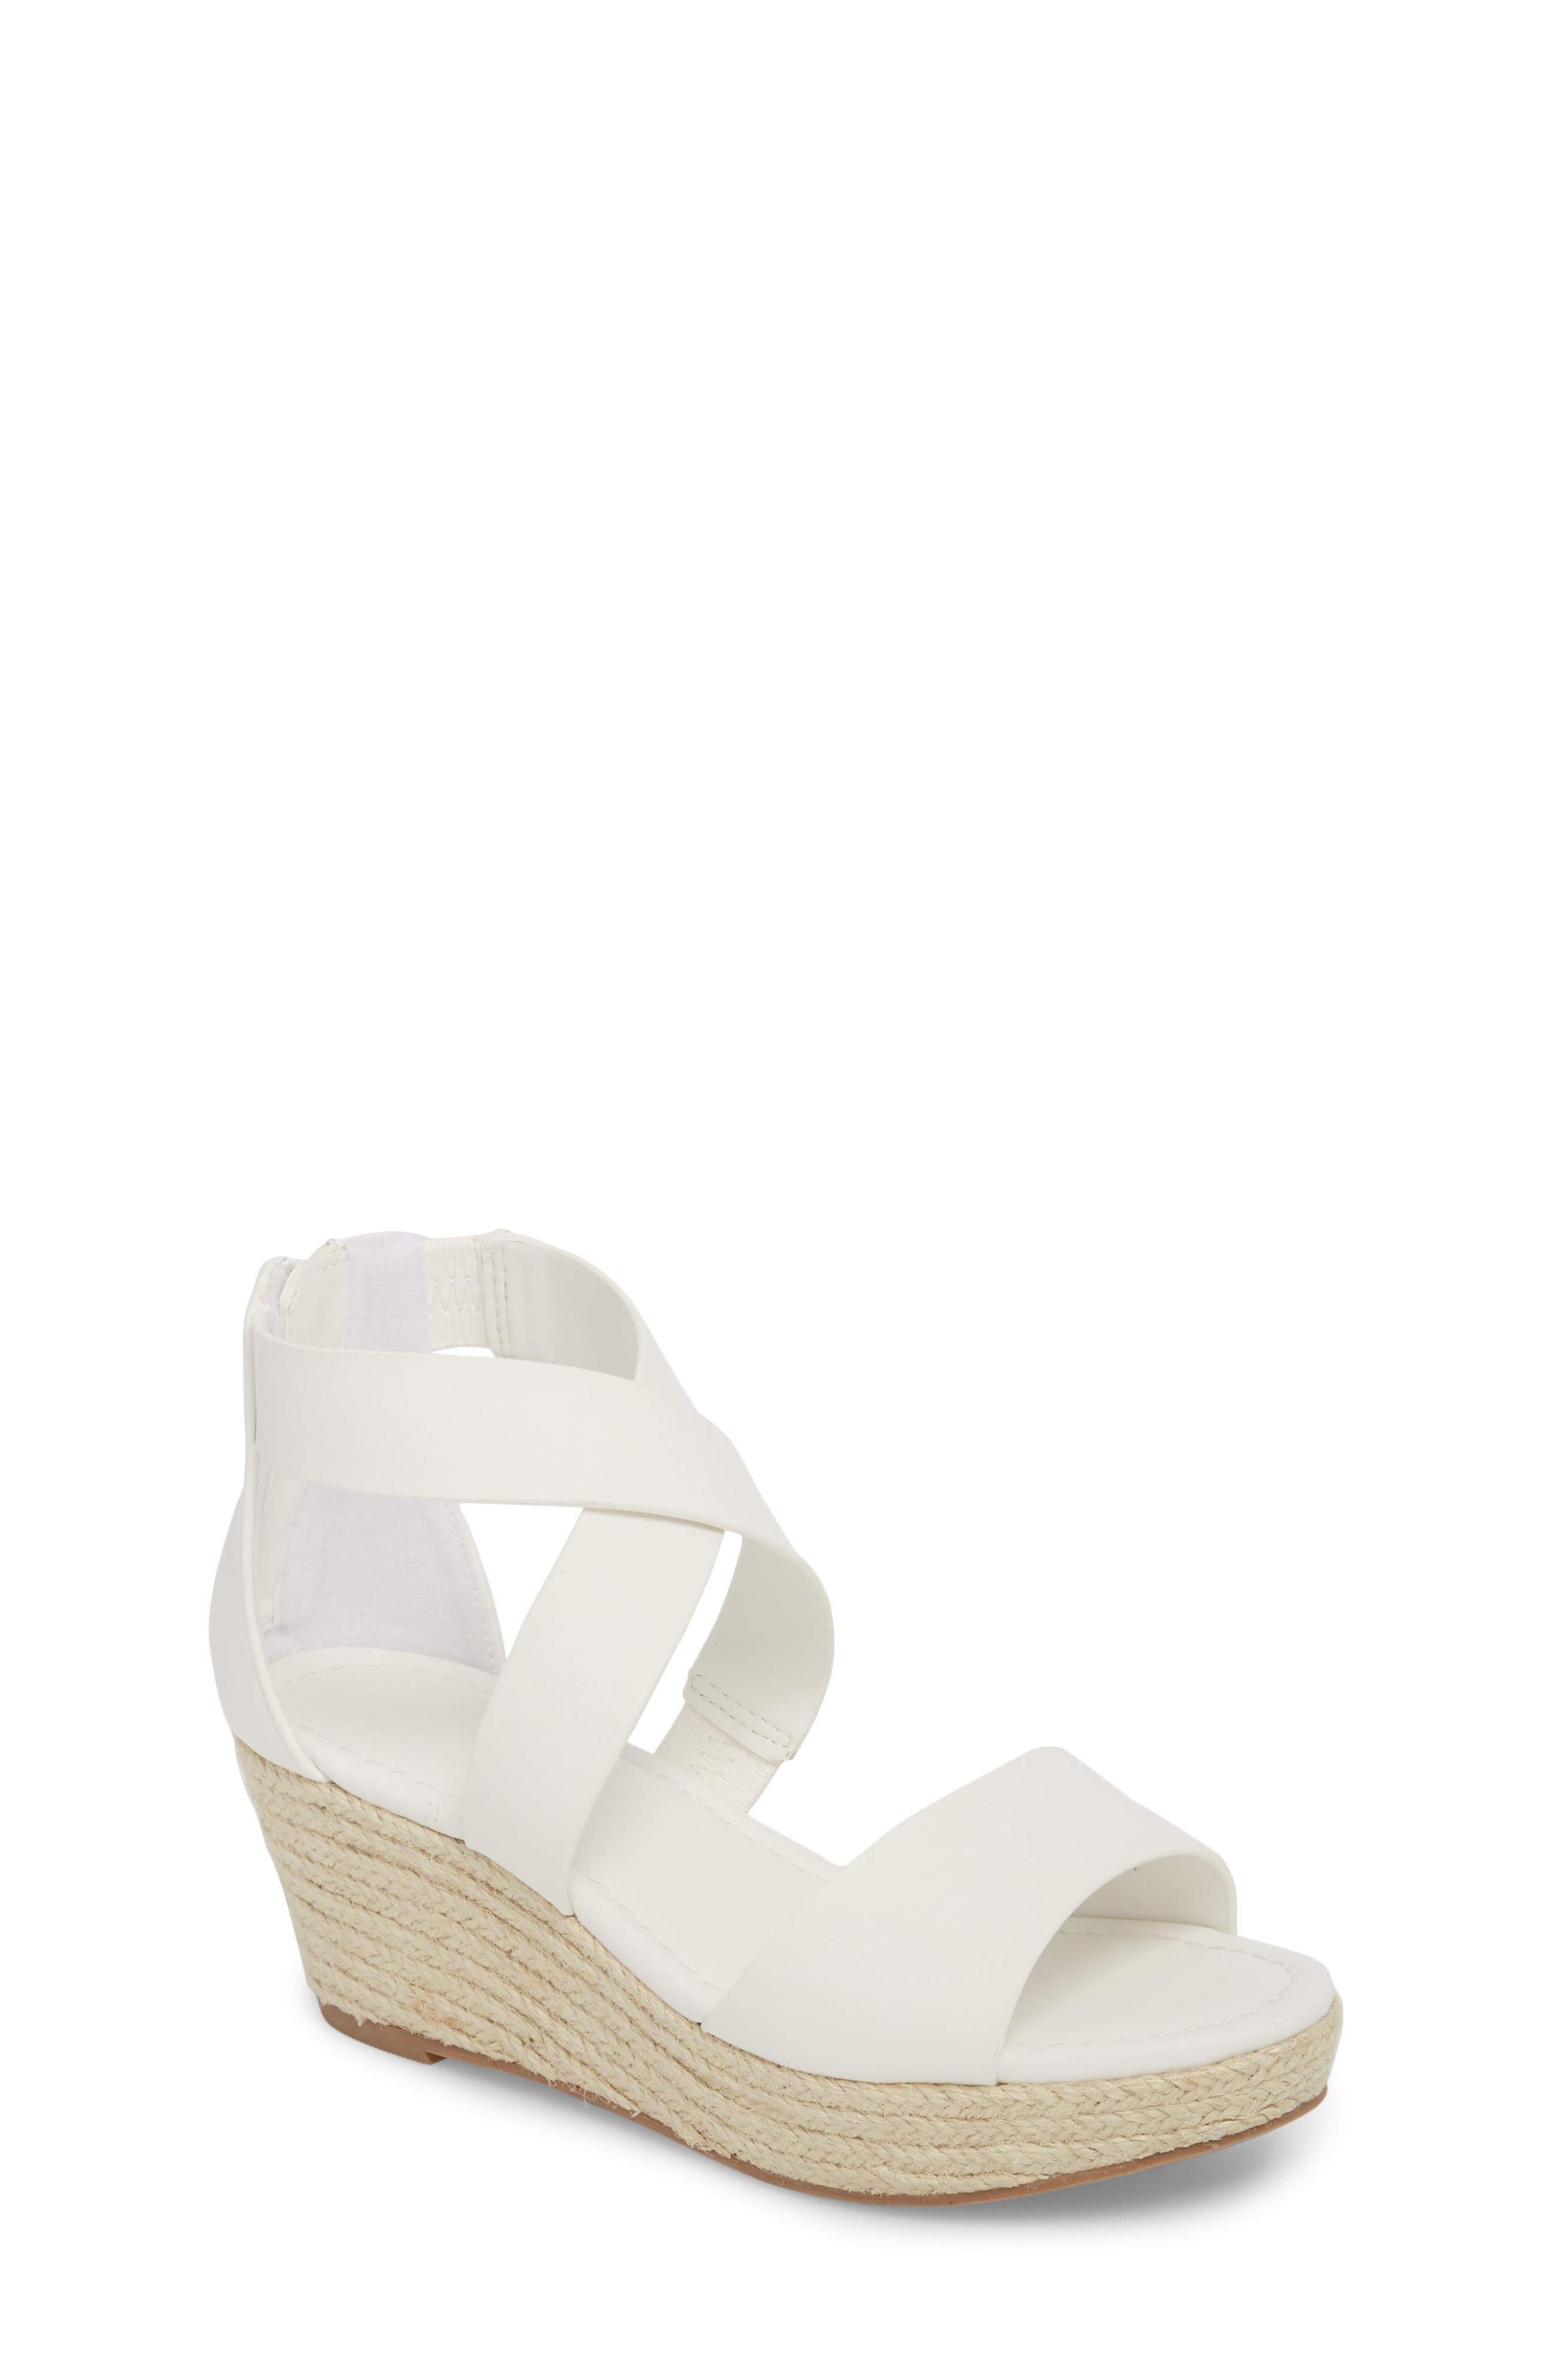 Wilma Platform Wedge Sandal,                         Main,                         color, White